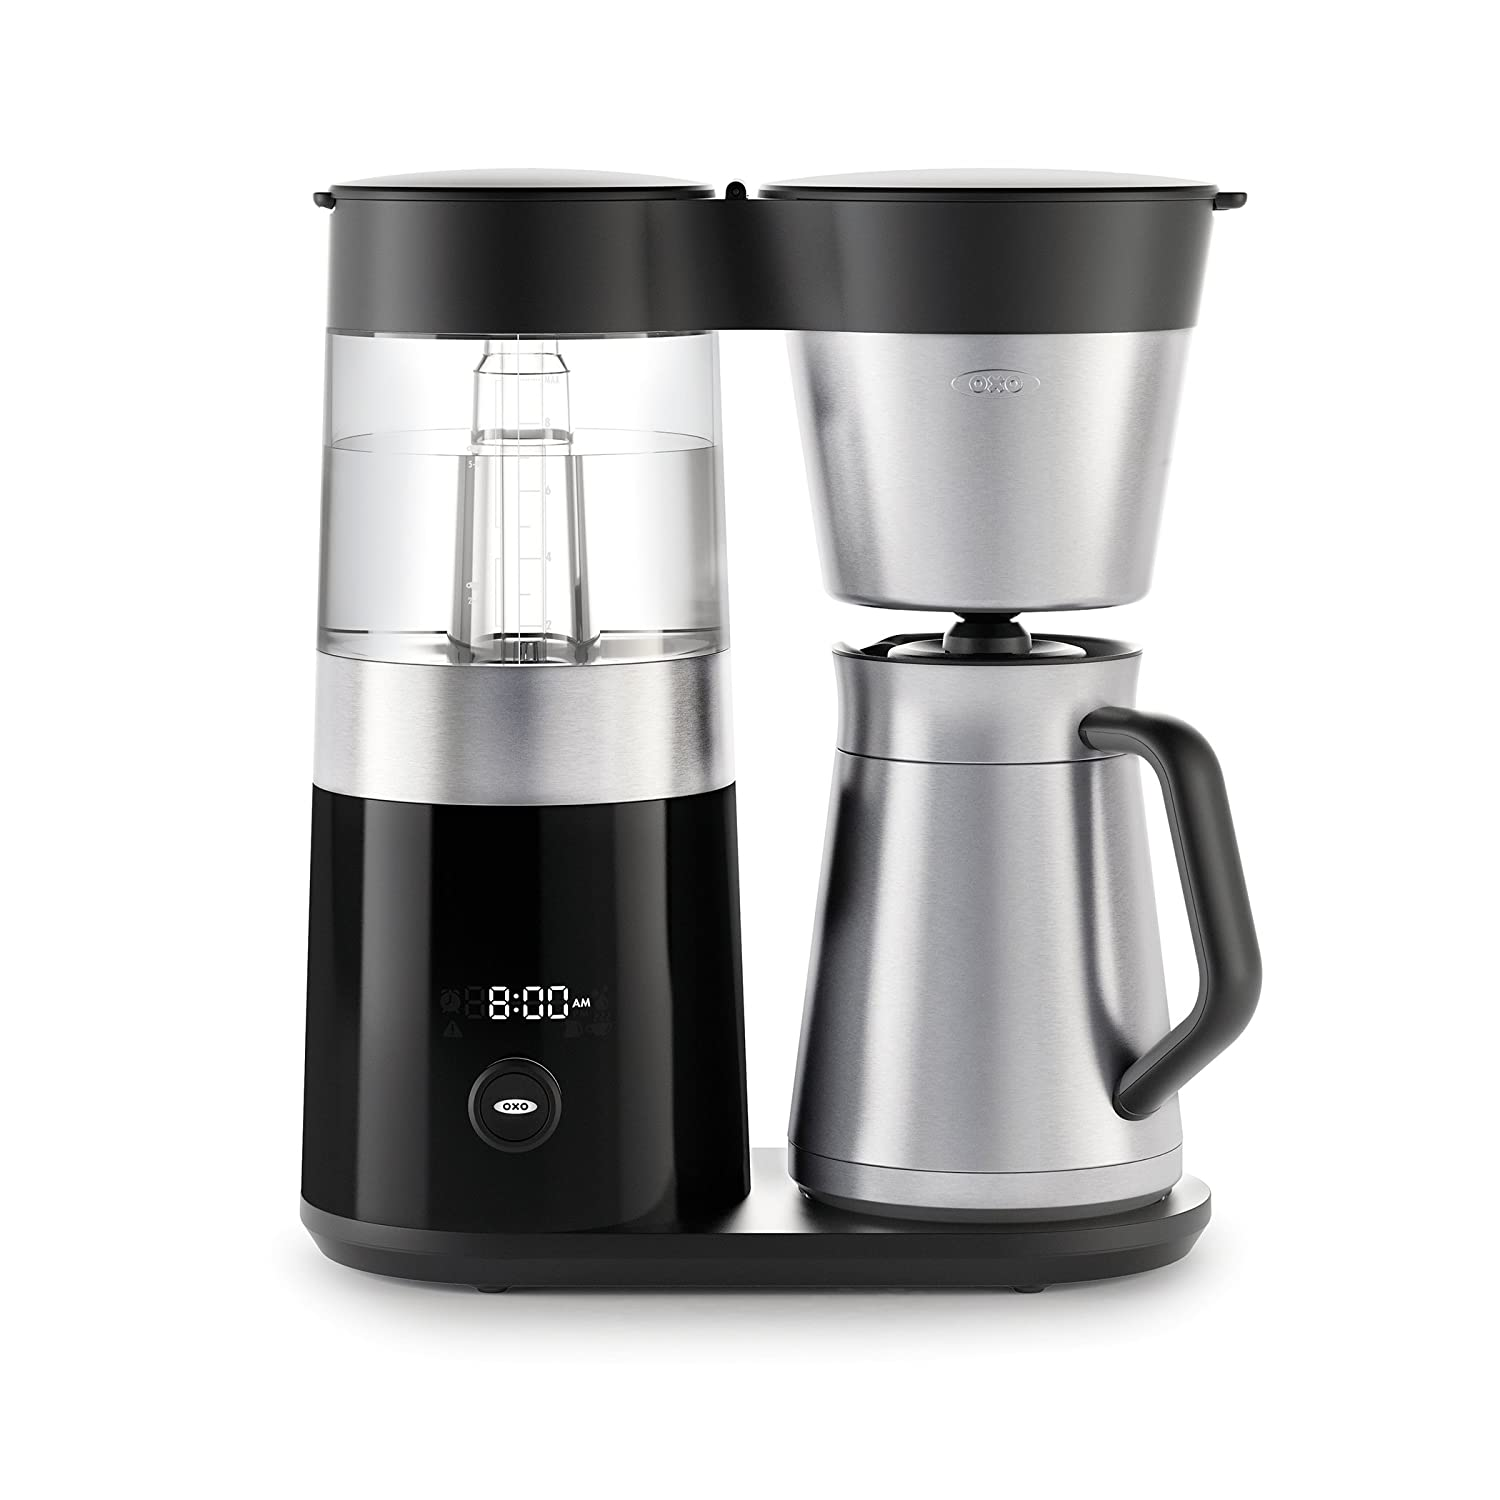 Oxo Coffee Maker Warranty : SCAA Certified Coffee Makers - Best Tasting Coffee Makers